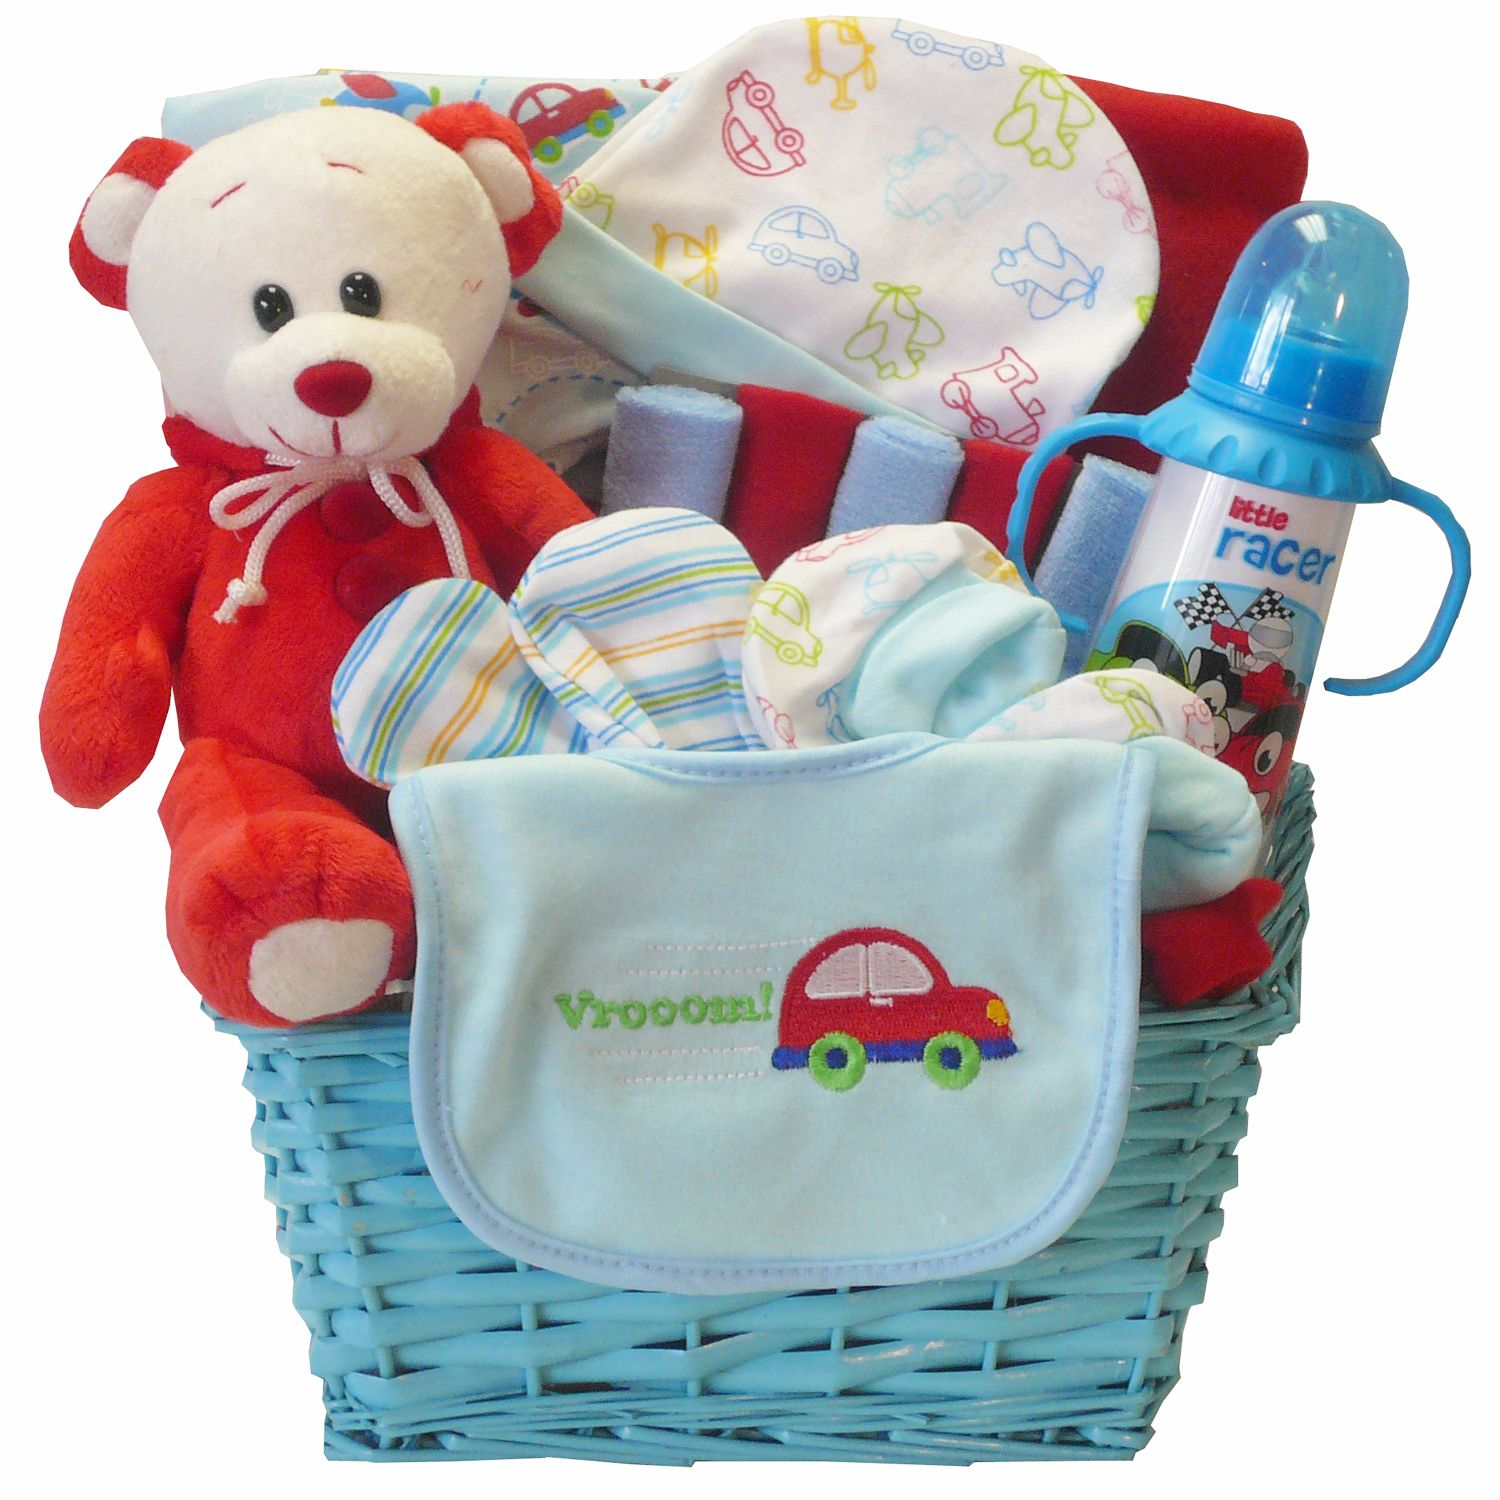 Go Go Baby! This gift is for your little one that will soon be on the go with all these car themed necessities to help him speed away. Presented in a blue gift basket that also makes great storage or decor for baby's room, it includes an adorable themed outfit set, keepsake teddy bear and more.